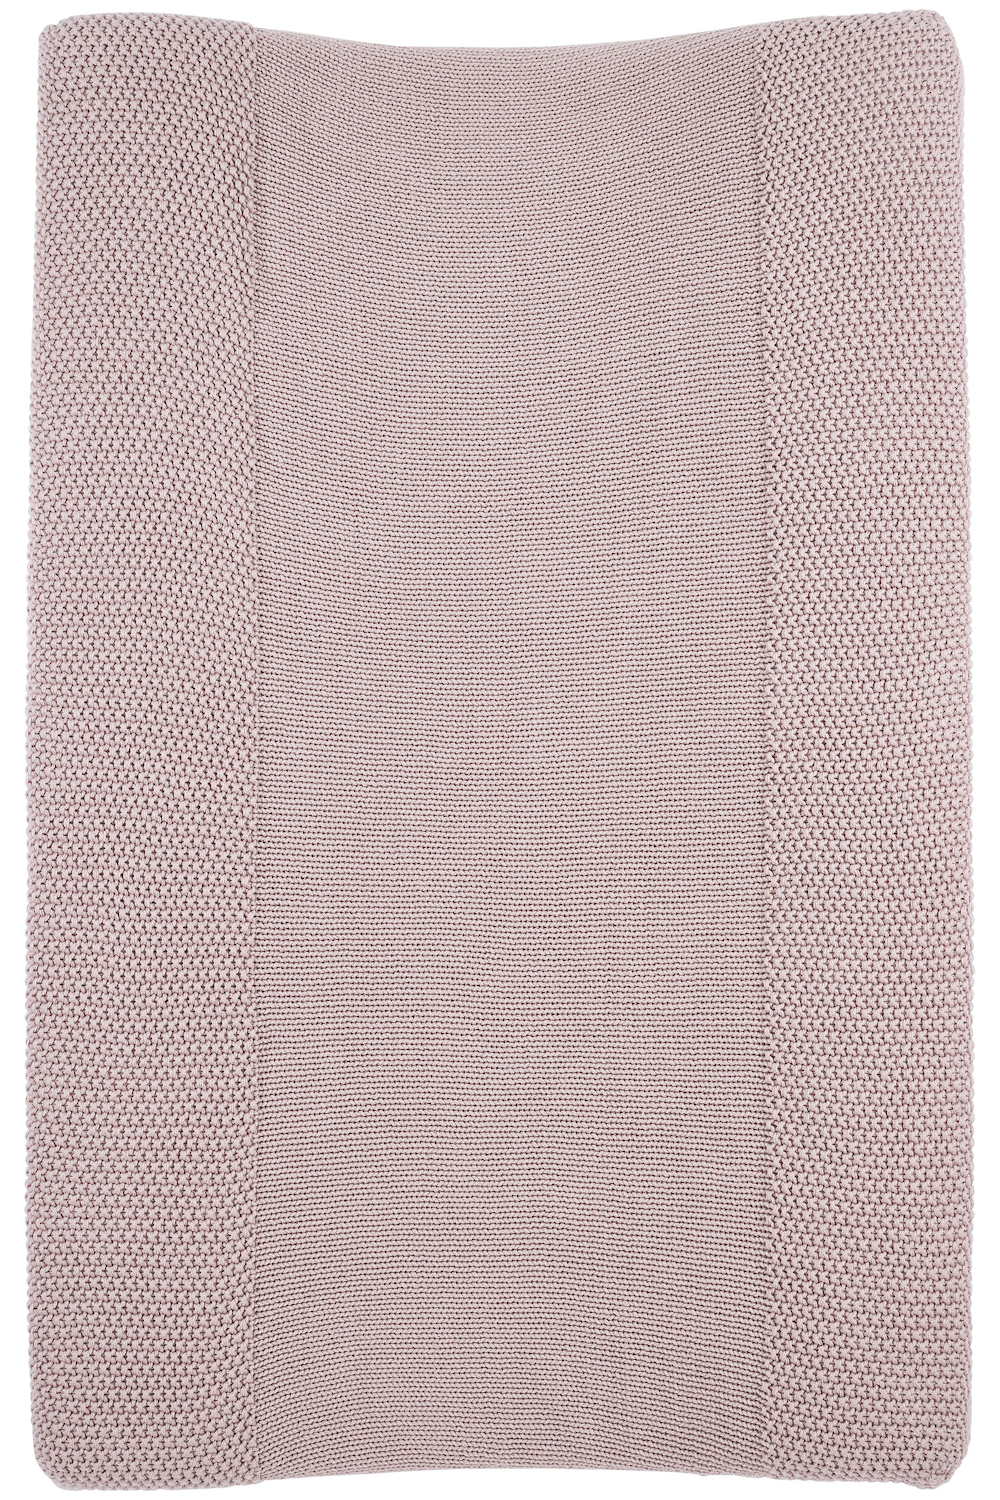 Organic Changing Pad Cover Mini Relief - Lilac - 50X70 cm